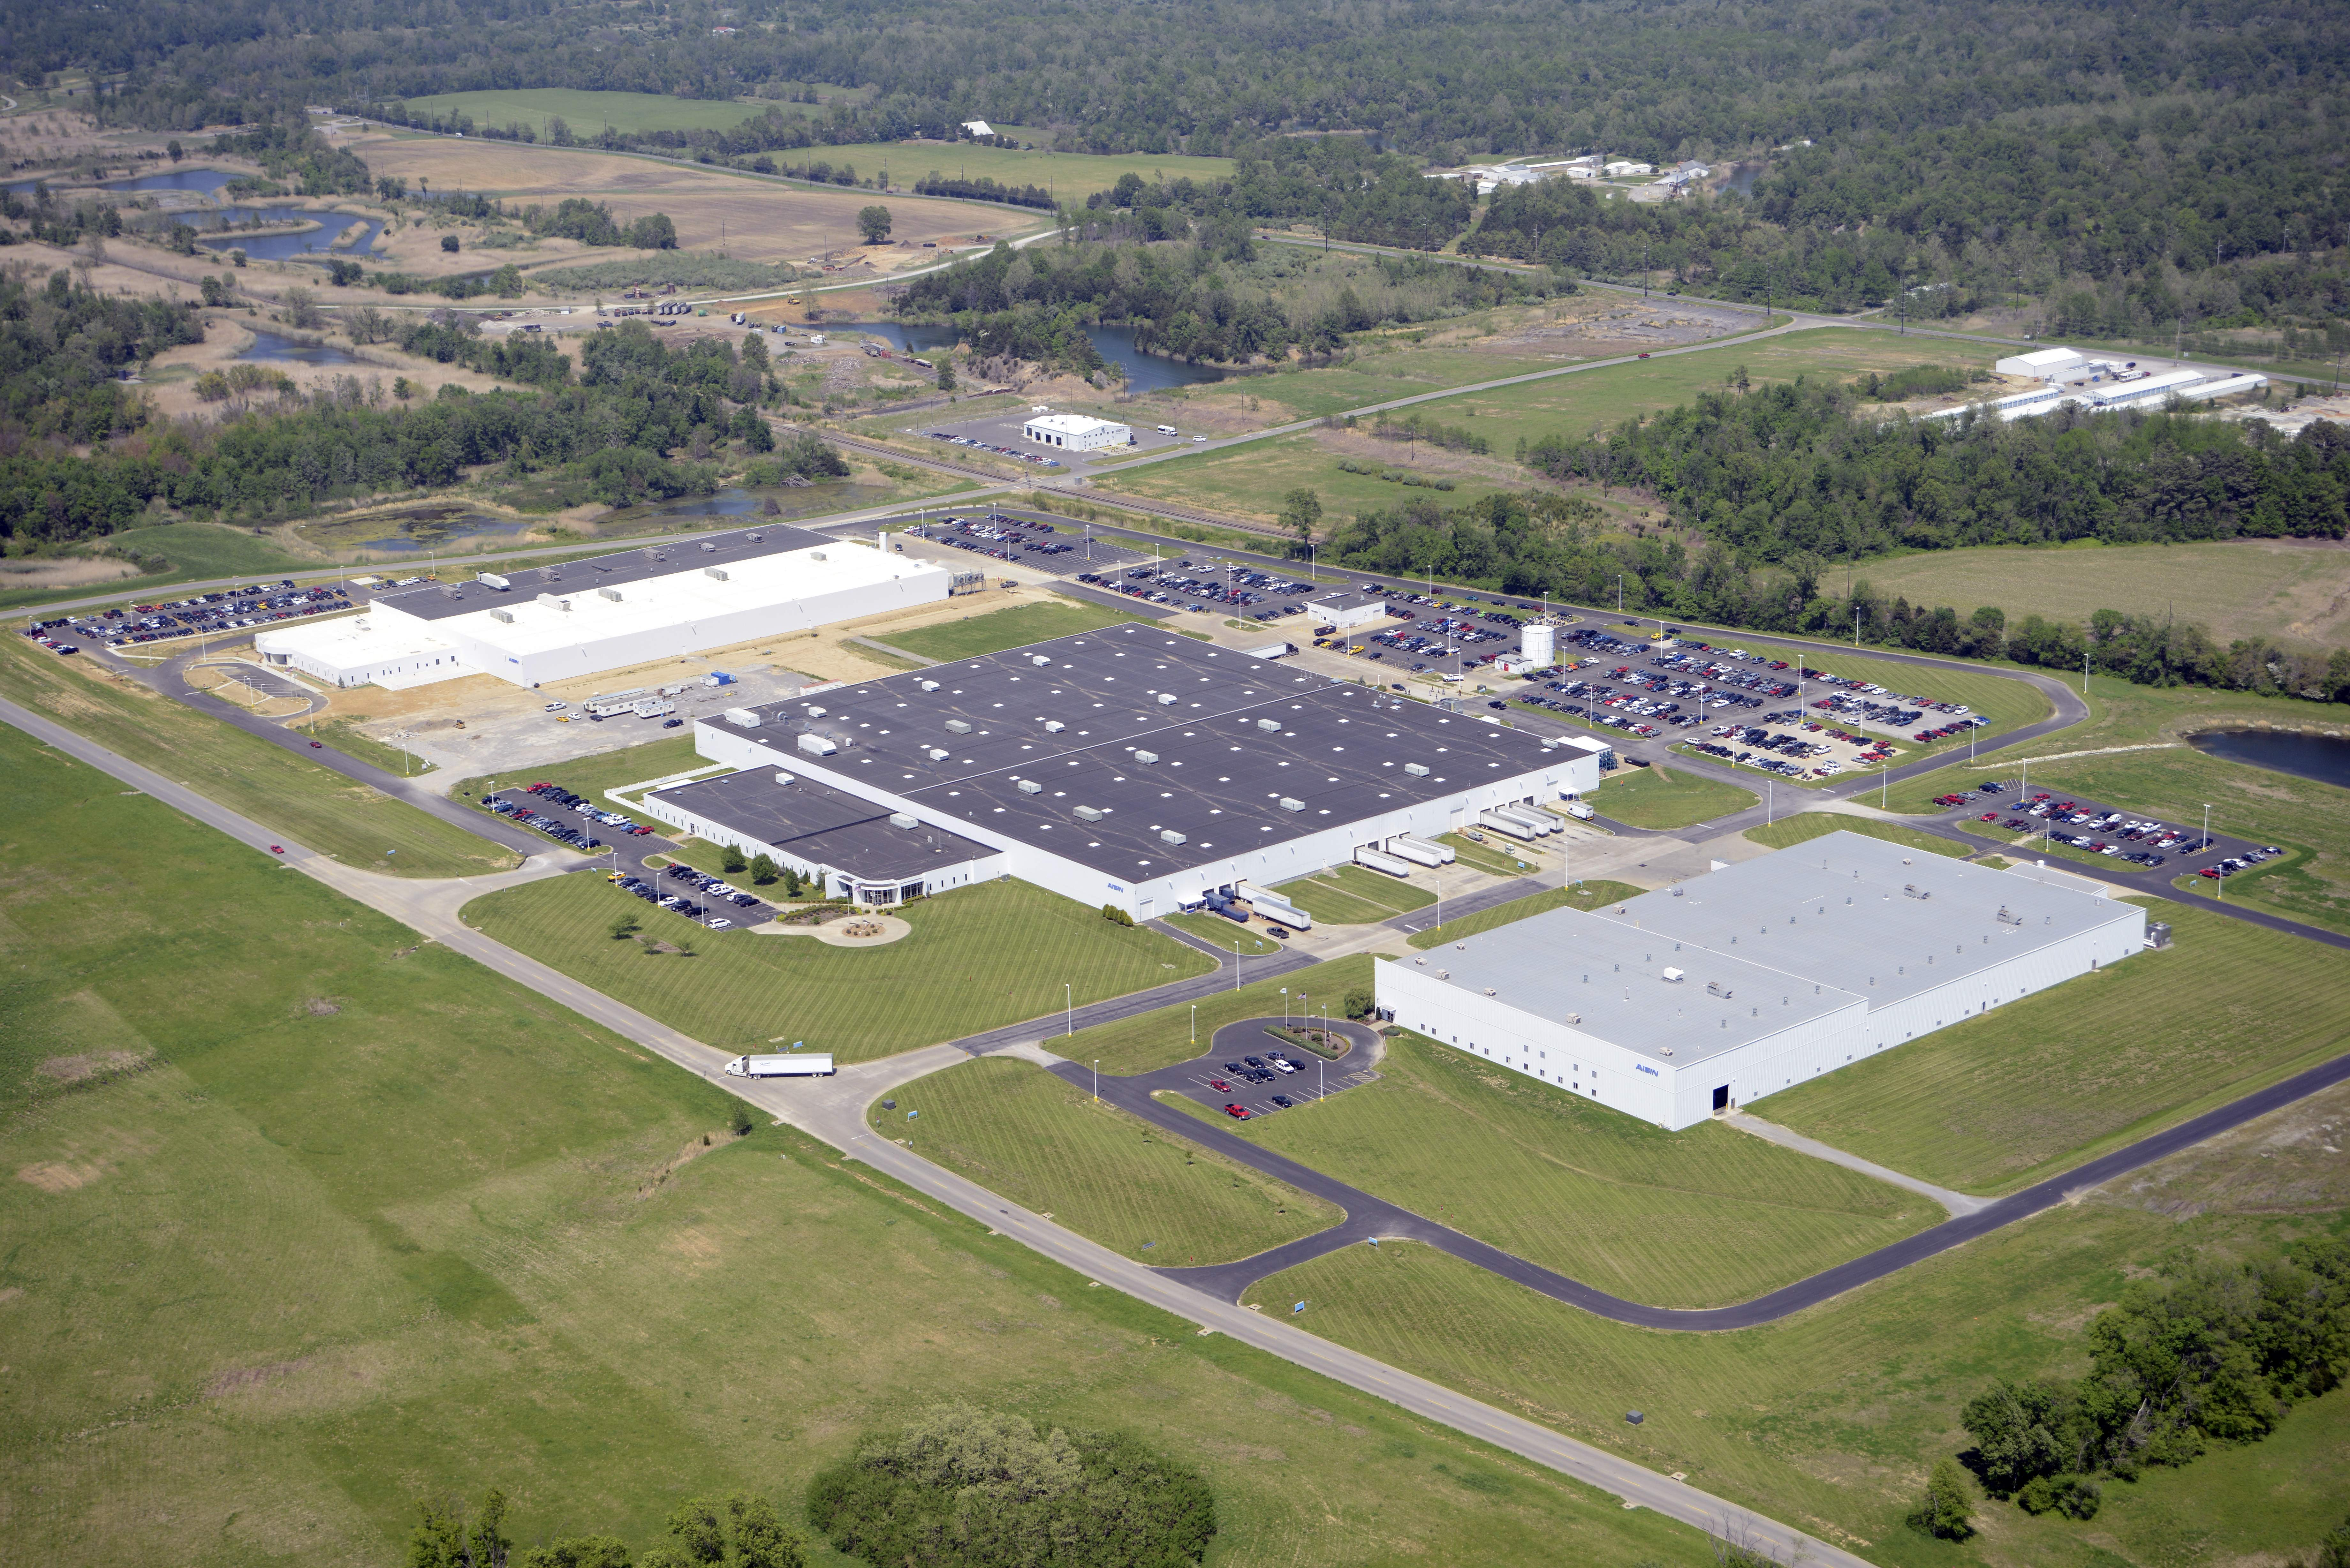 The Aisin plants are the main focus of REDCO Industrial Park as shown here from this aerial view in 2014.